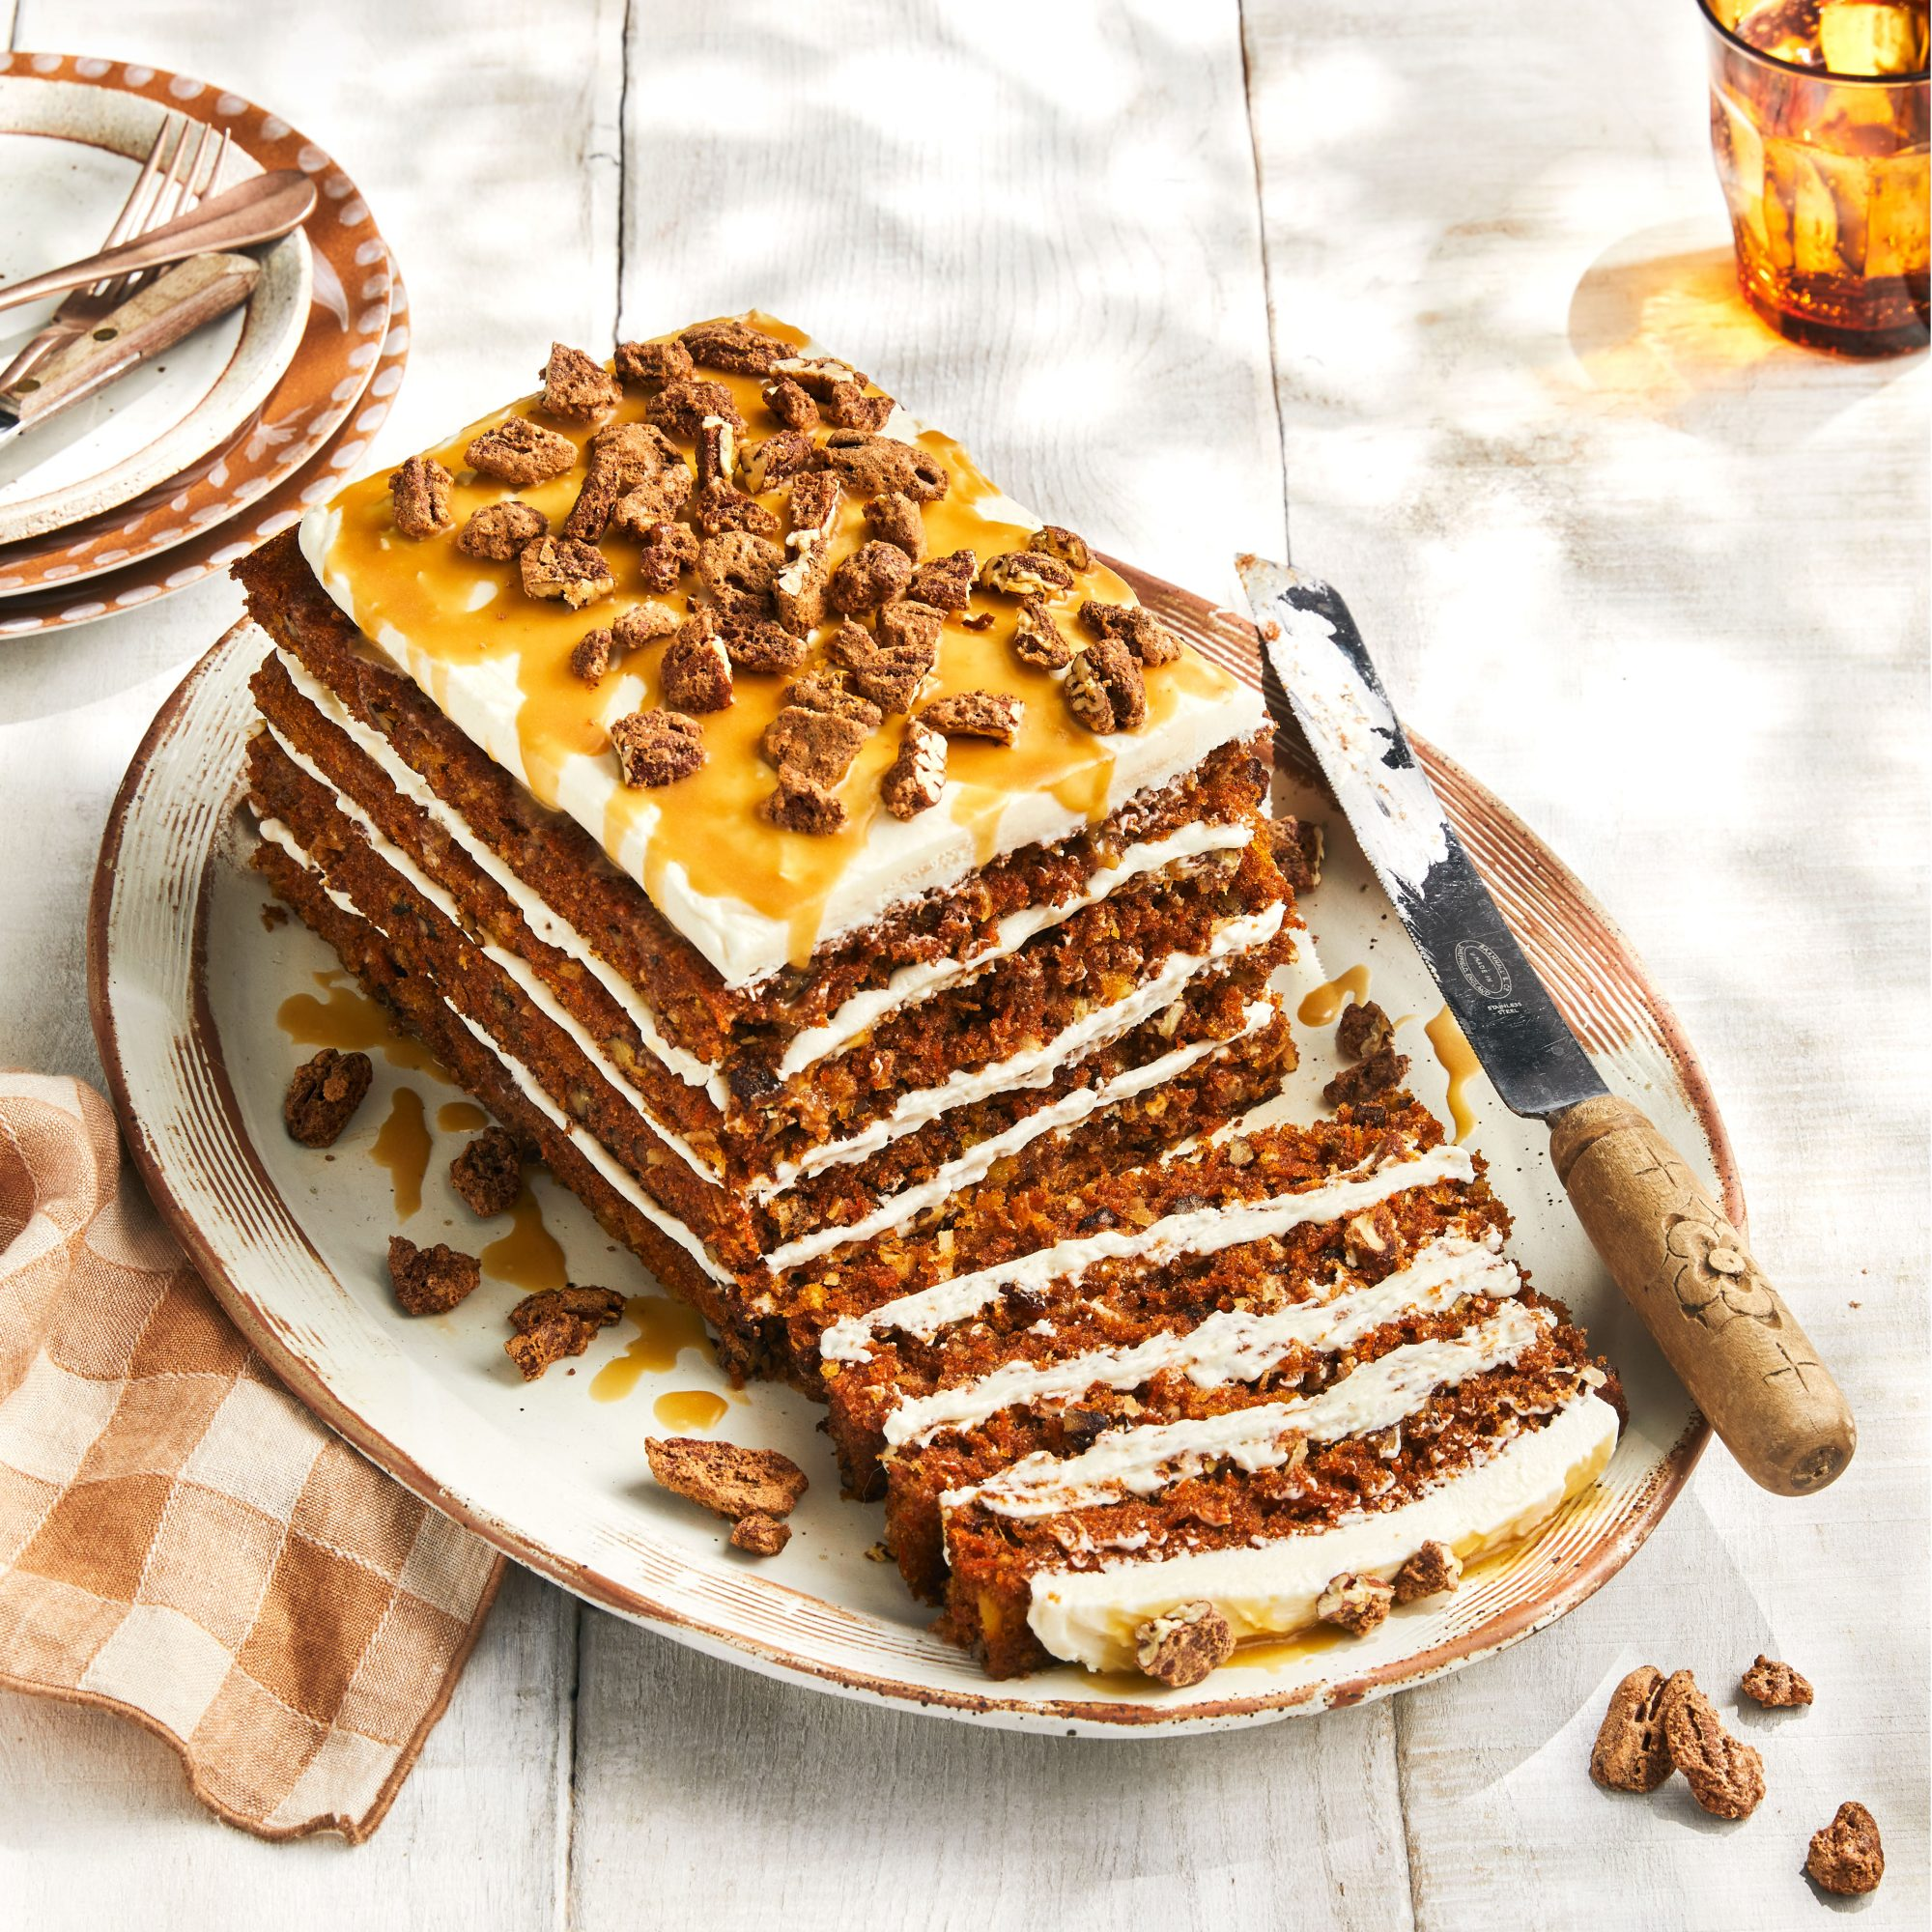 Erika Kwee's Spiced Carrot Cake with Candied Pecans and Caramel Sauce